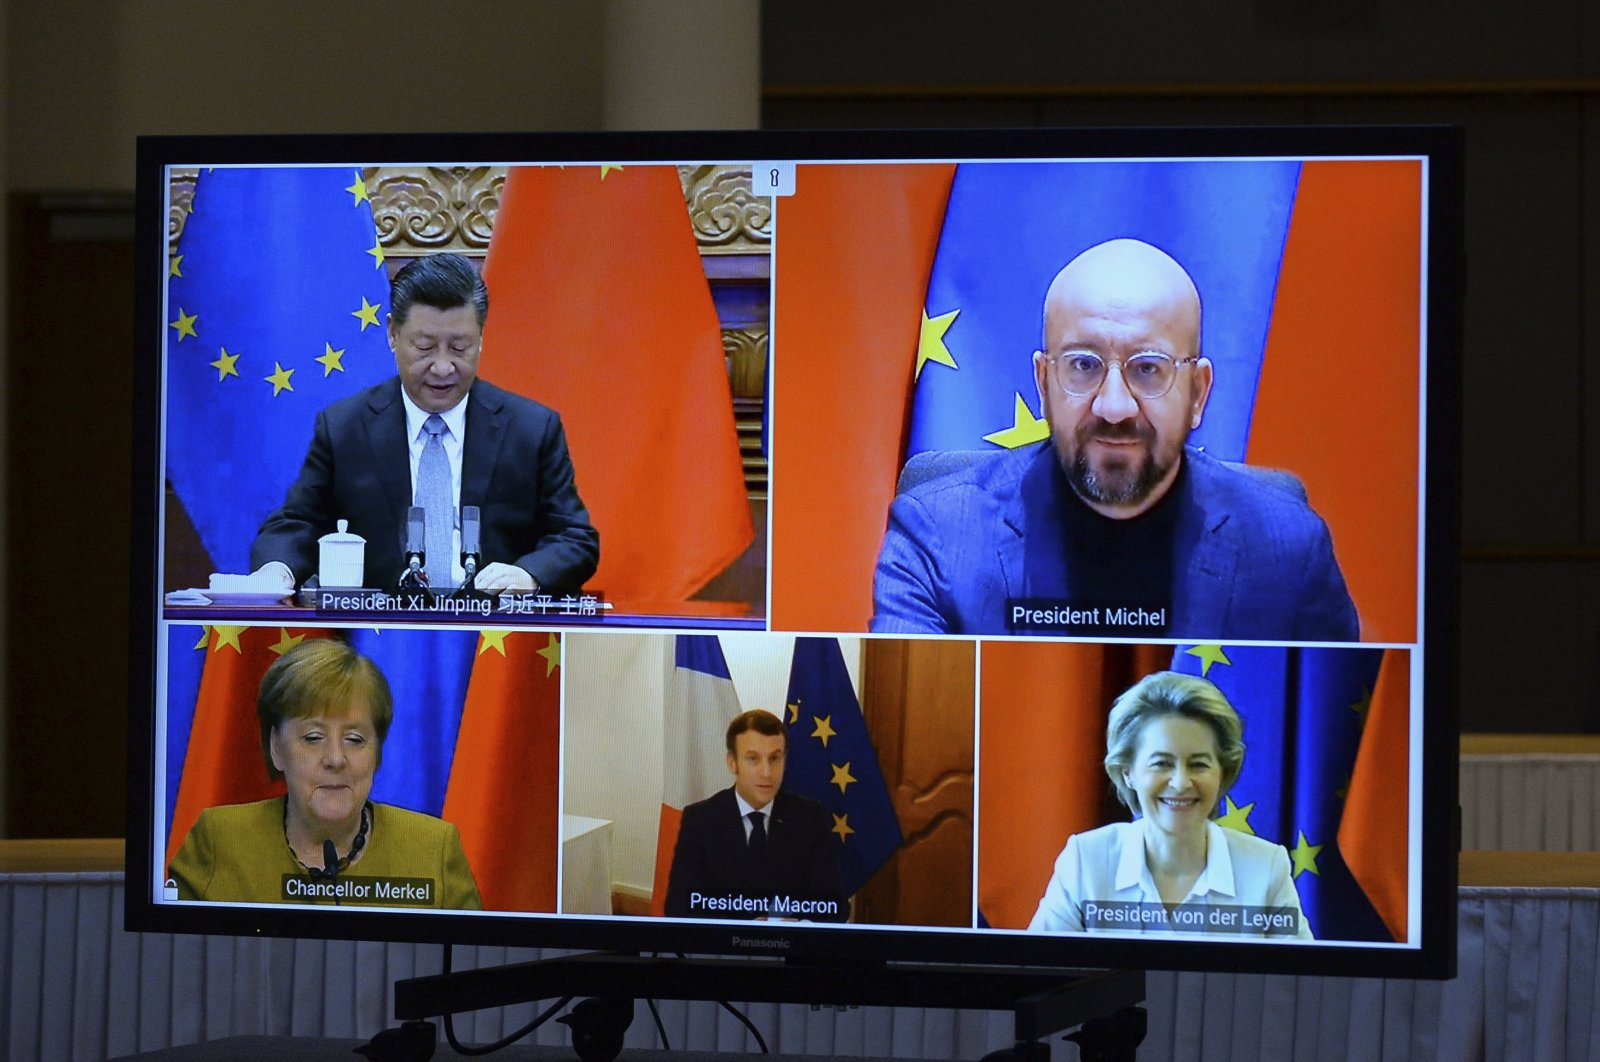 A screen displays live Chinese President Xi Jinping (top L), European Council President Charles Michel (top R), European Commission President Ursula von der Leyen (bottom R), French President Emmanuel Macron (bottom C) and German Chancellor Angela Merkel during an EU-China Leaders' meeting videoconference at the European Council headquarters in Brussels, Belgium, Dec. 30, 2020. (AP Photo)